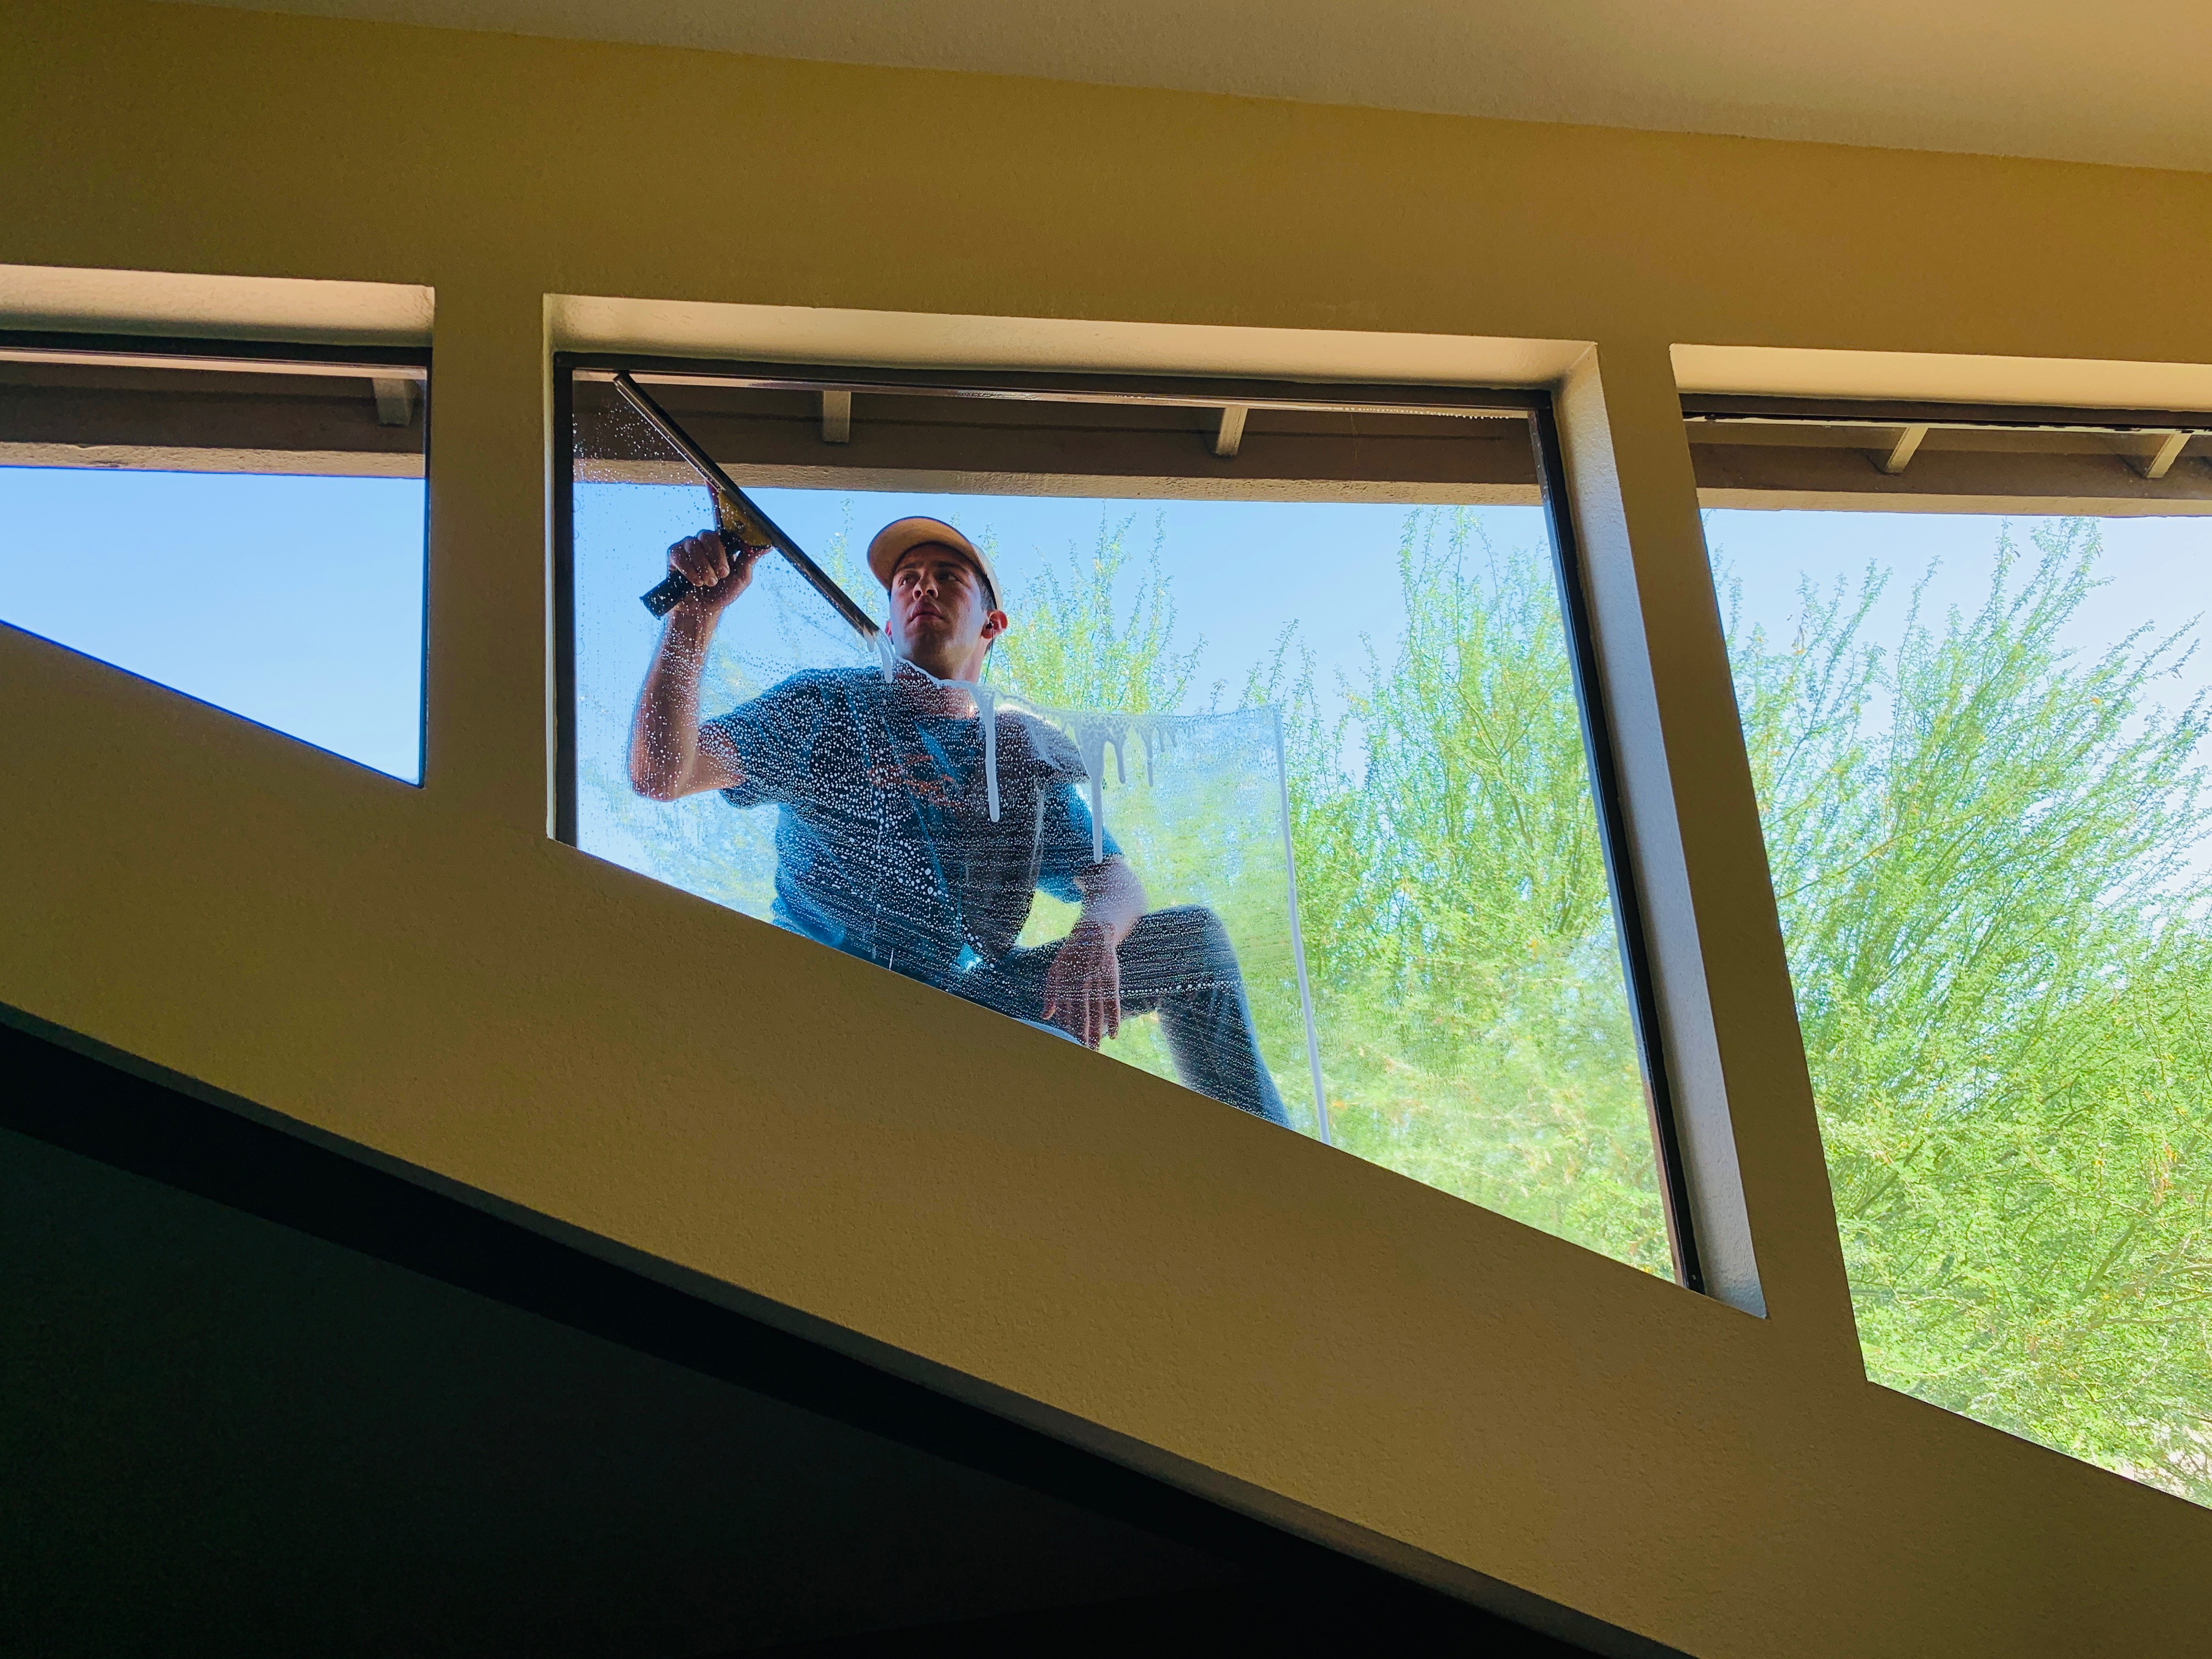 home window washing in mesa, az